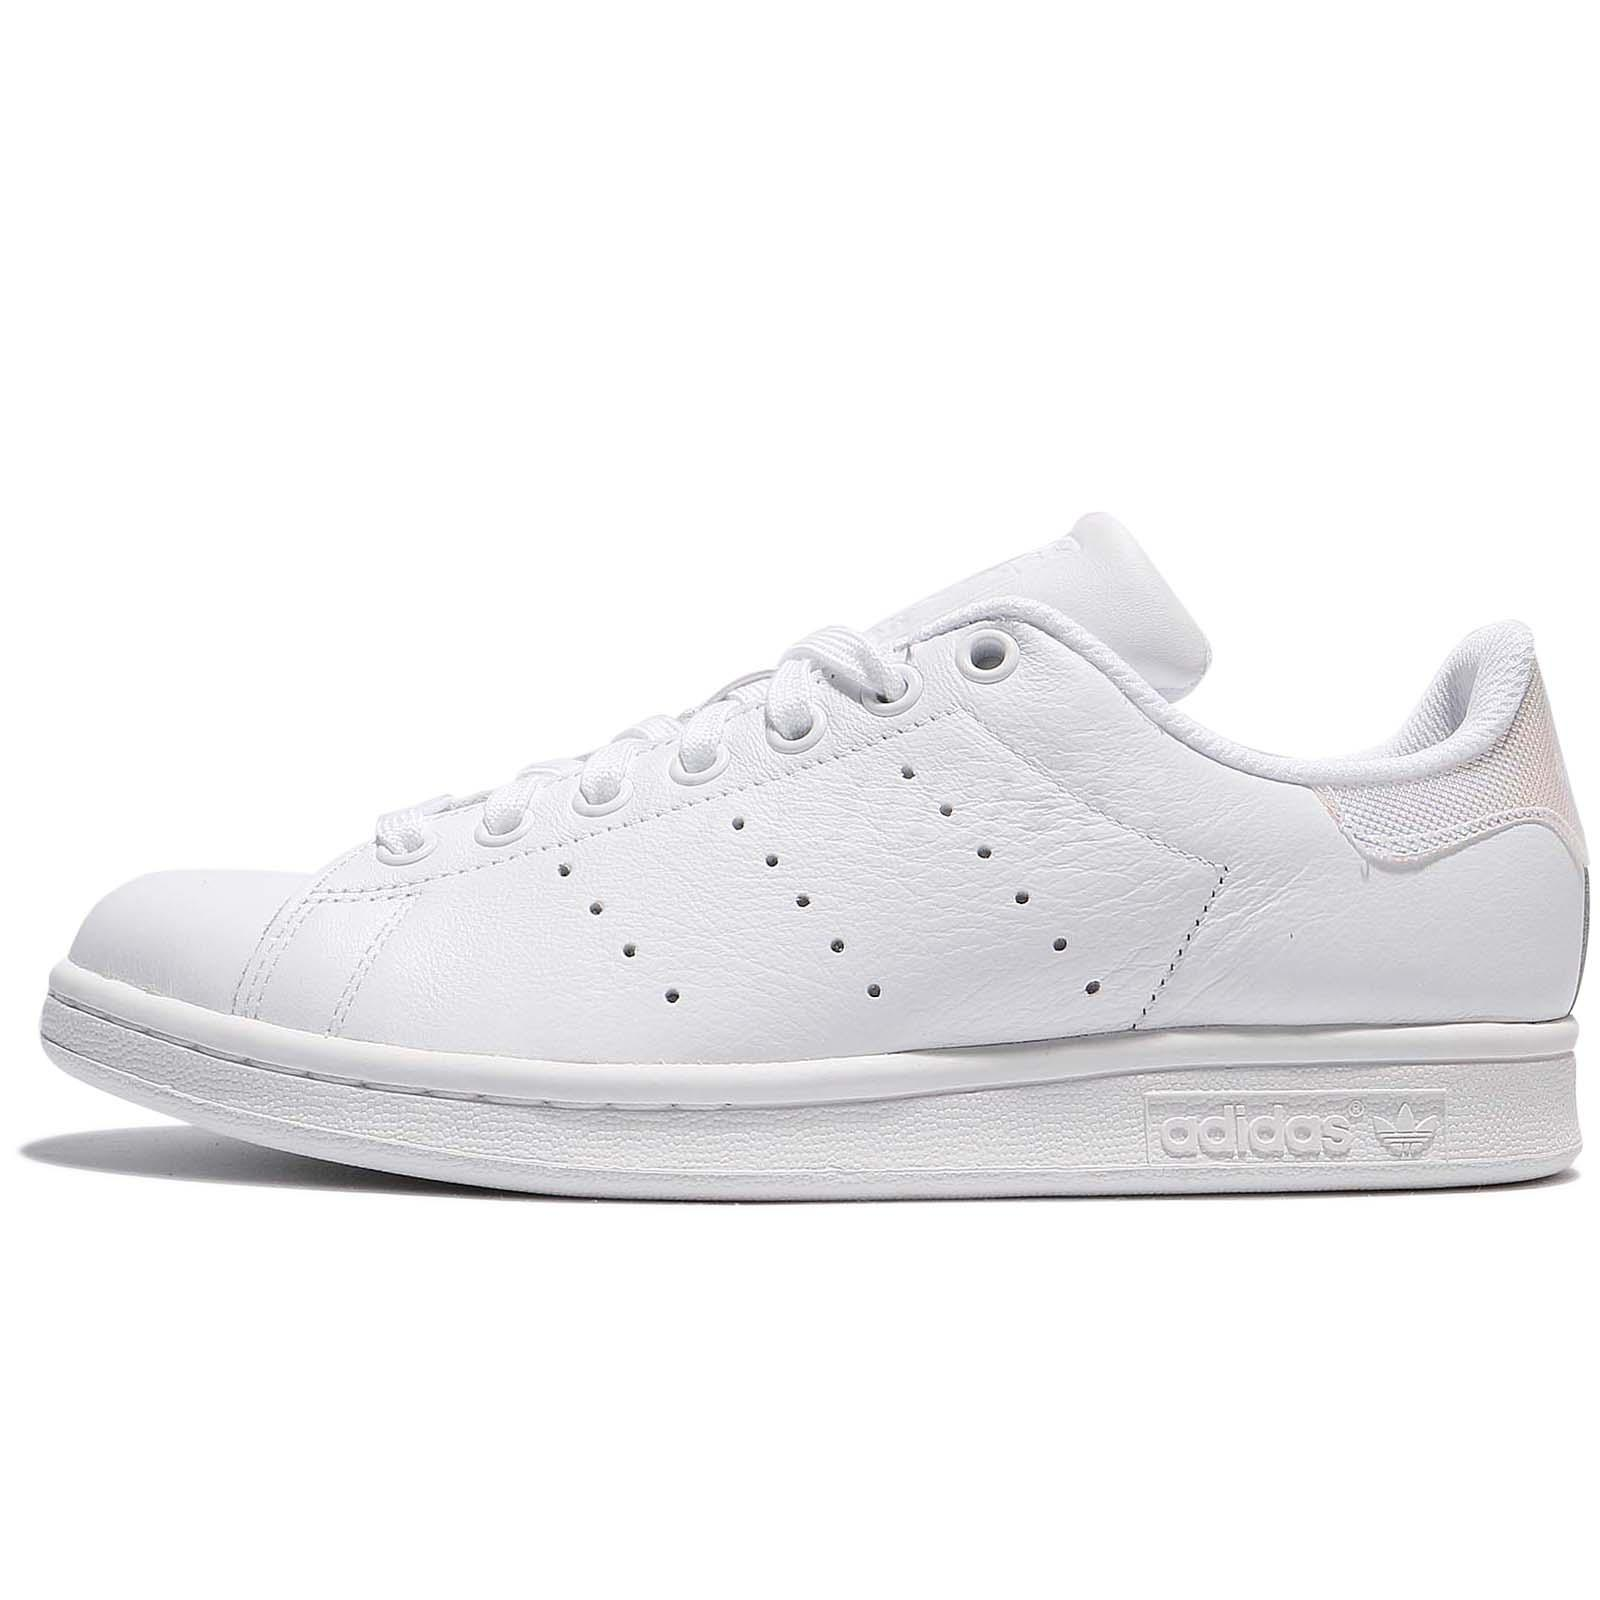 adidas originals stan smith w iridescent white women shoes sneakers cp9716 ebay. Black Bedroom Furniture Sets. Home Design Ideas